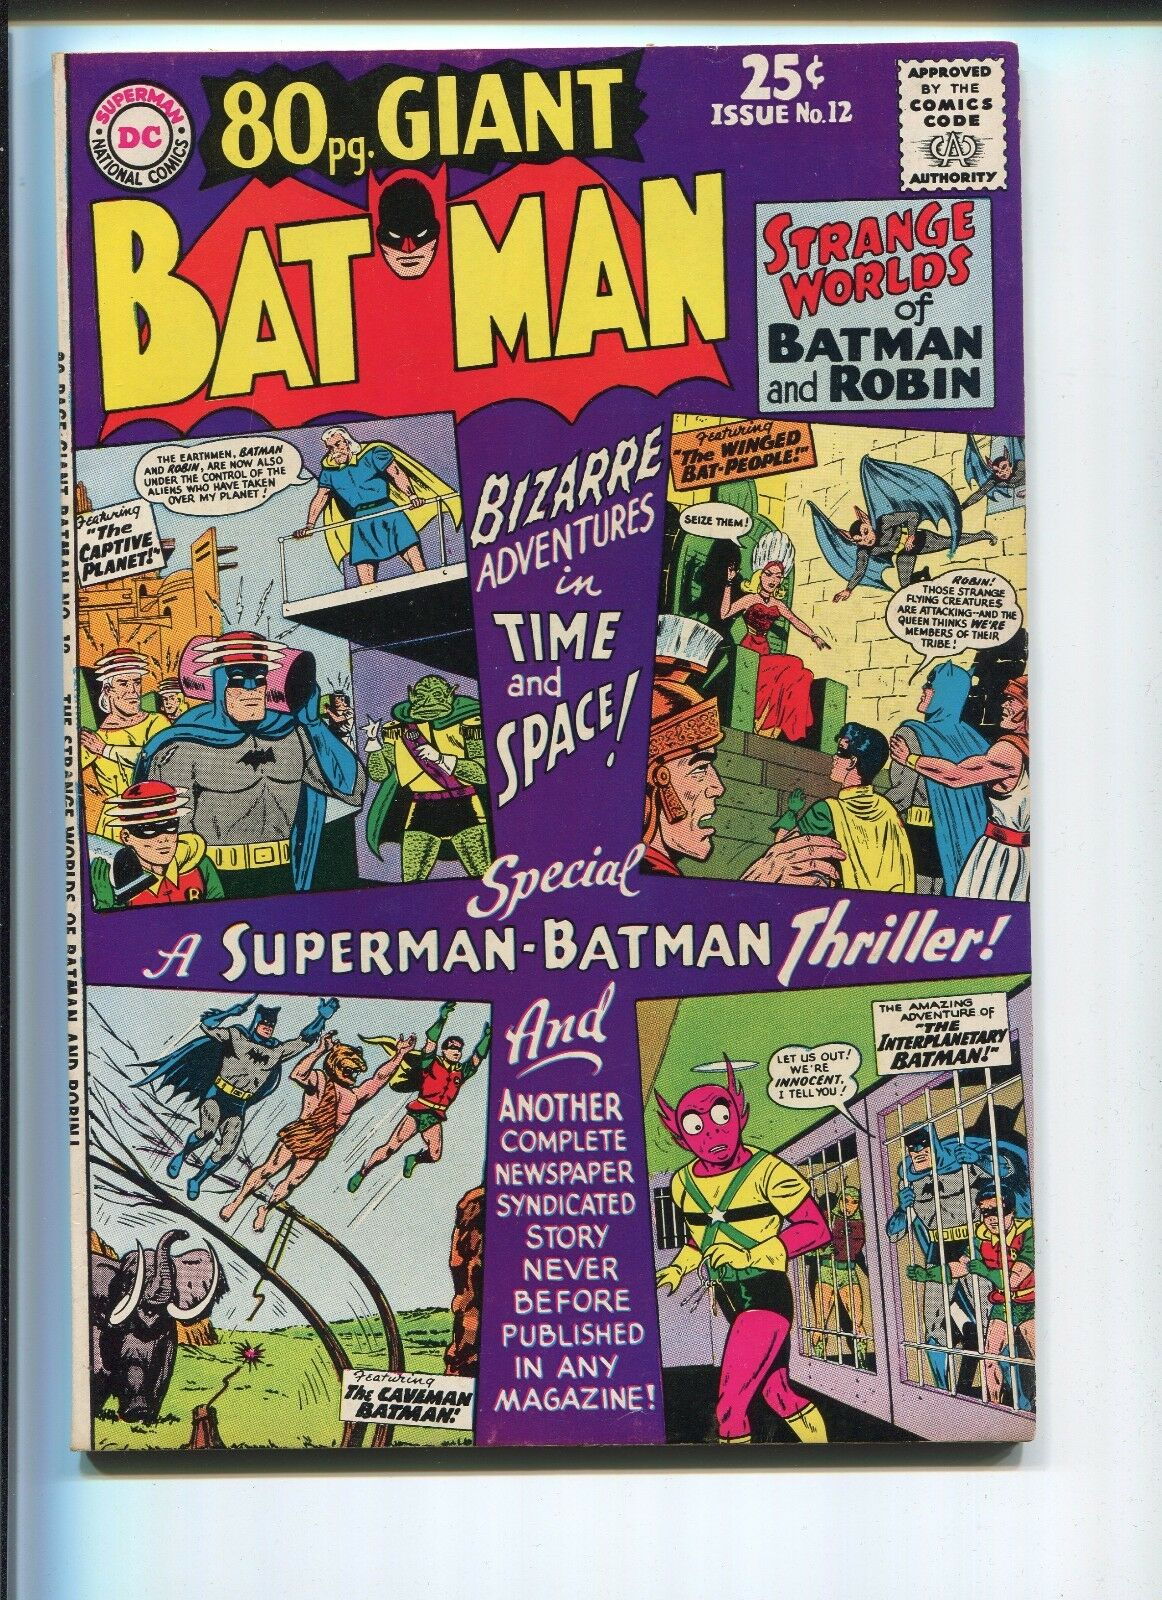 batman 80 page giant 12 9 0 vf nm nice spine one owner nice pages